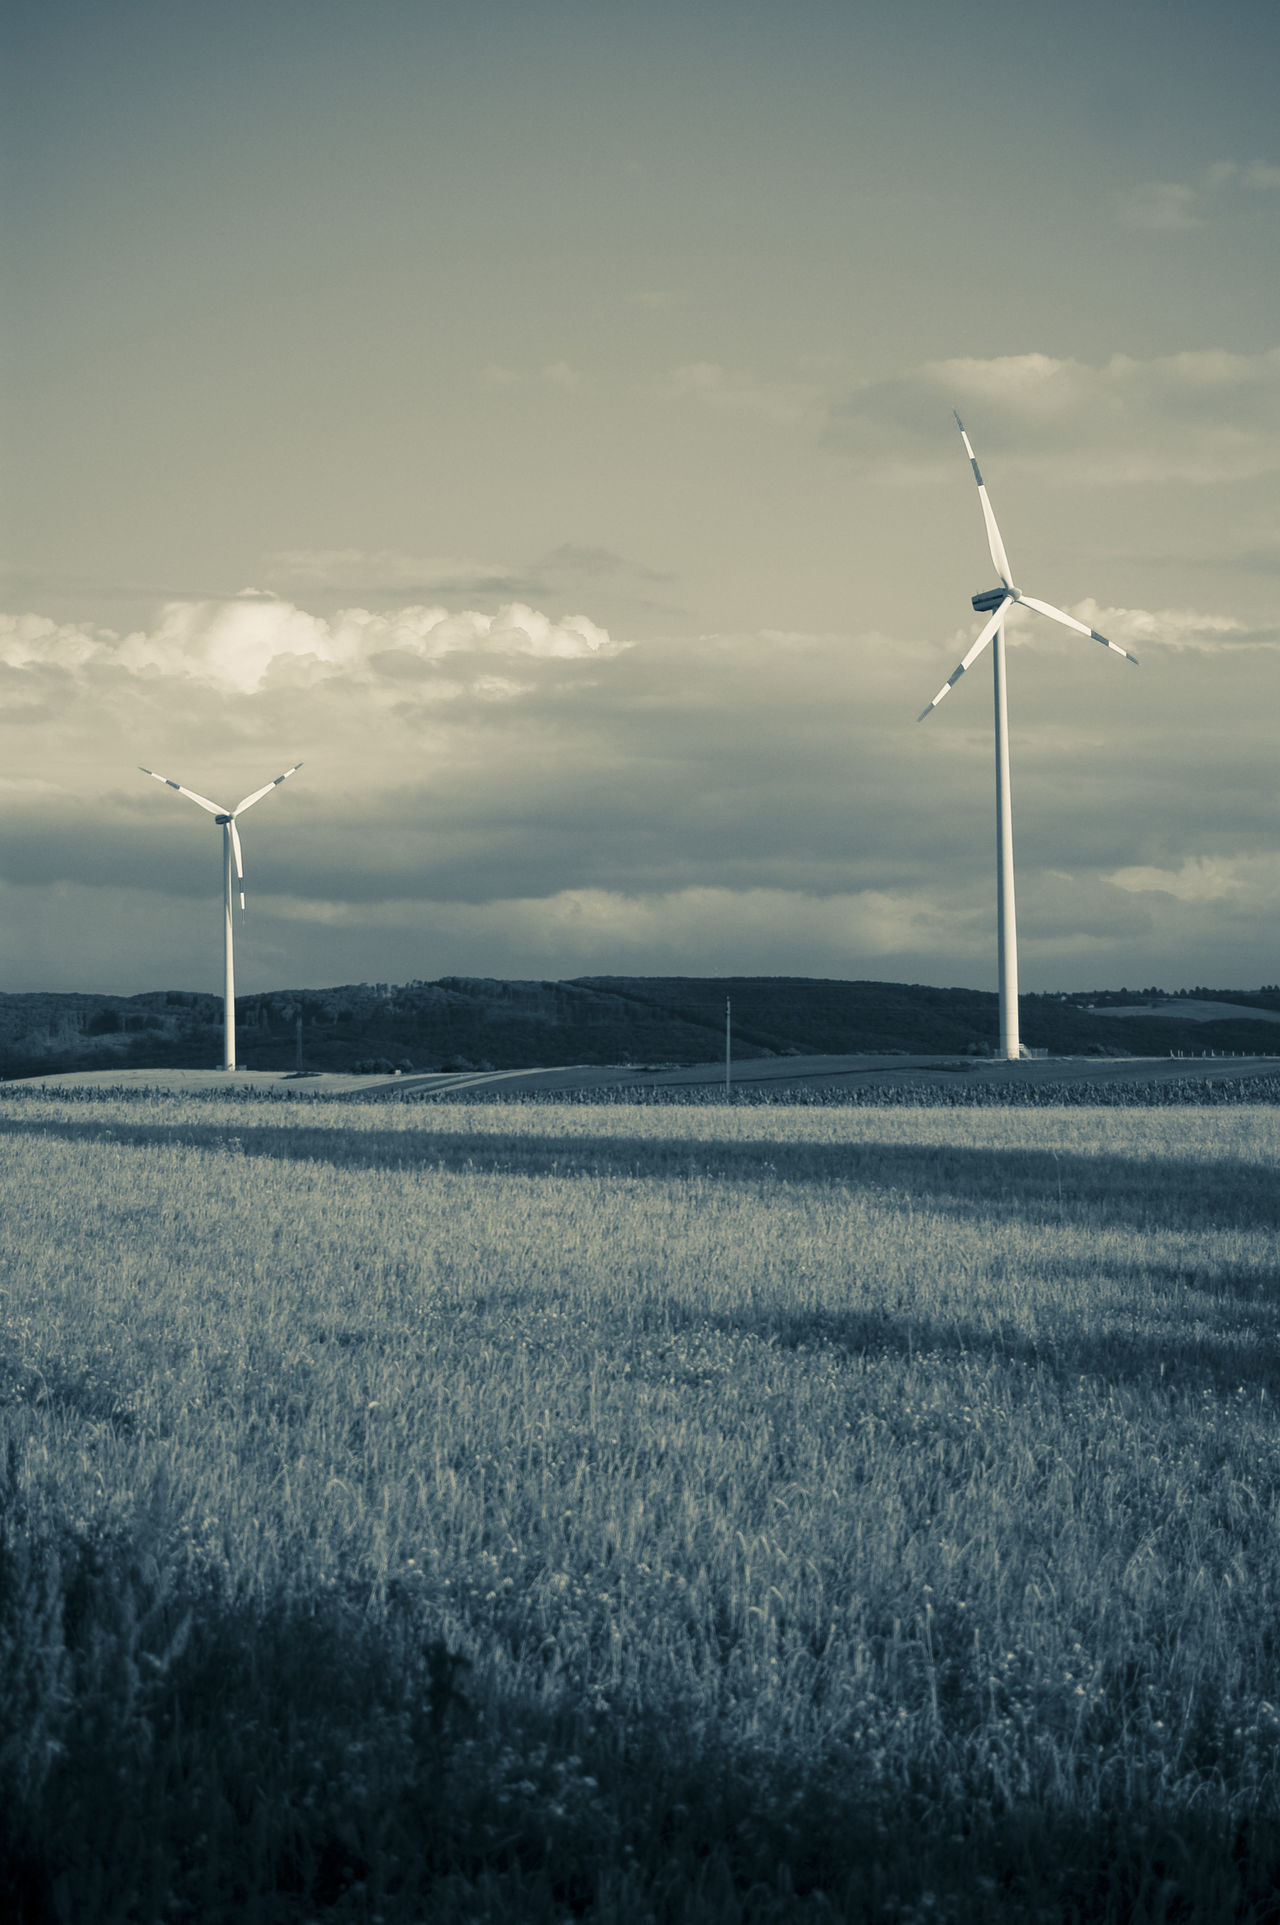 Alternative Energy Environmental Conservation Field With Power Stations Field With Wind Power Station Green Power Landscape Landscape With Power Station Monochrome Photography Outdoors Power Plant Technology And Nature Tone Splitting Wind Power Wind Power Generator